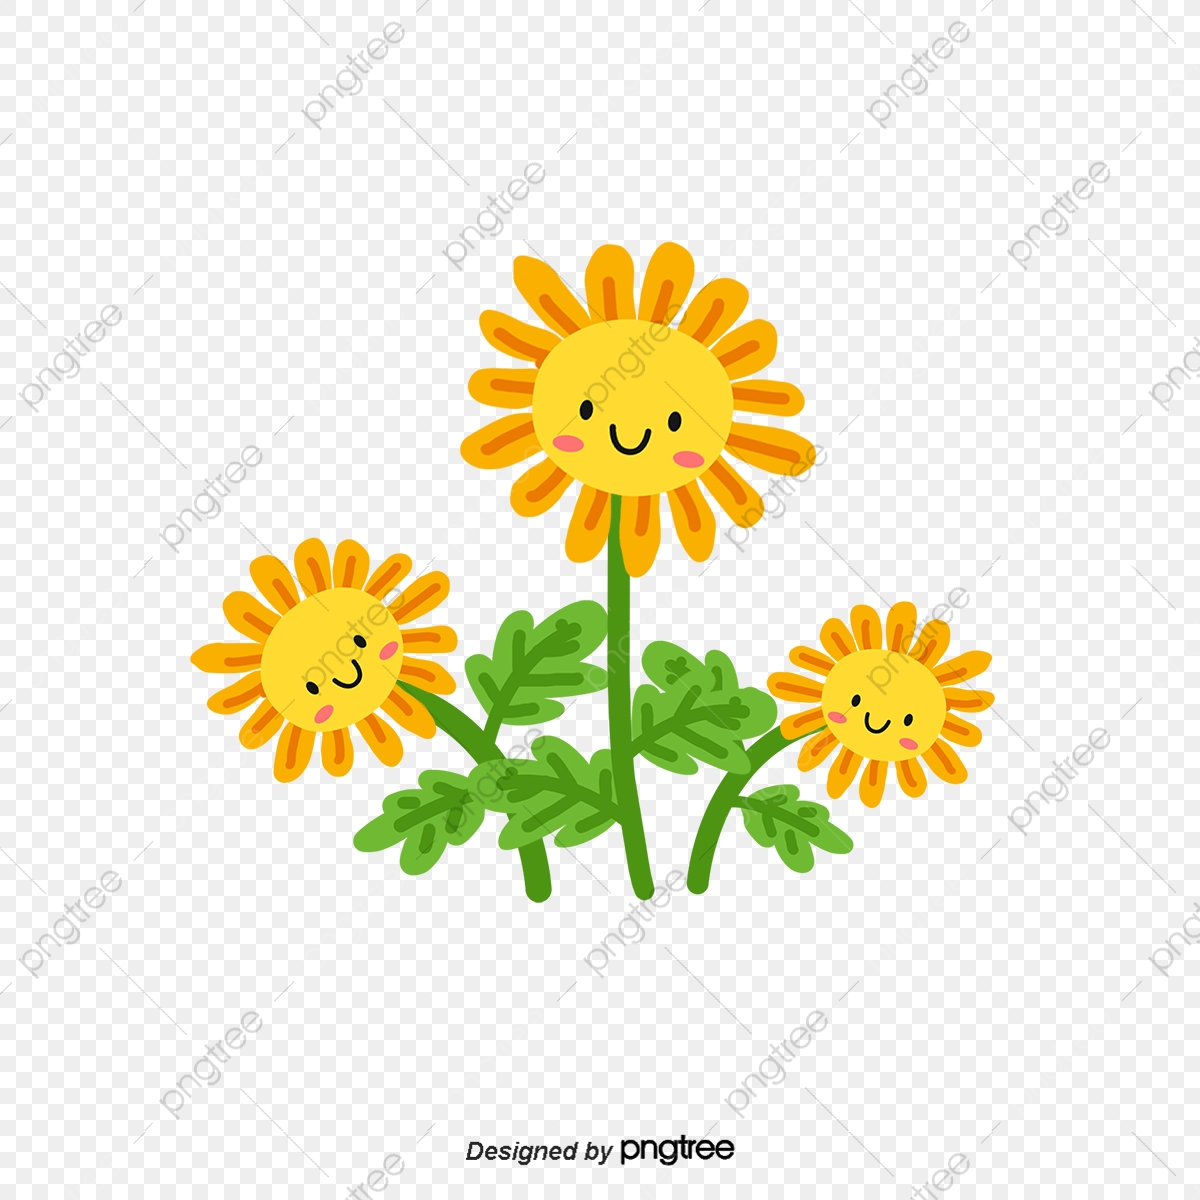 Free Sunflowers Black And White, Download Free Clip Art, Free Clip Art on  Clipart Library